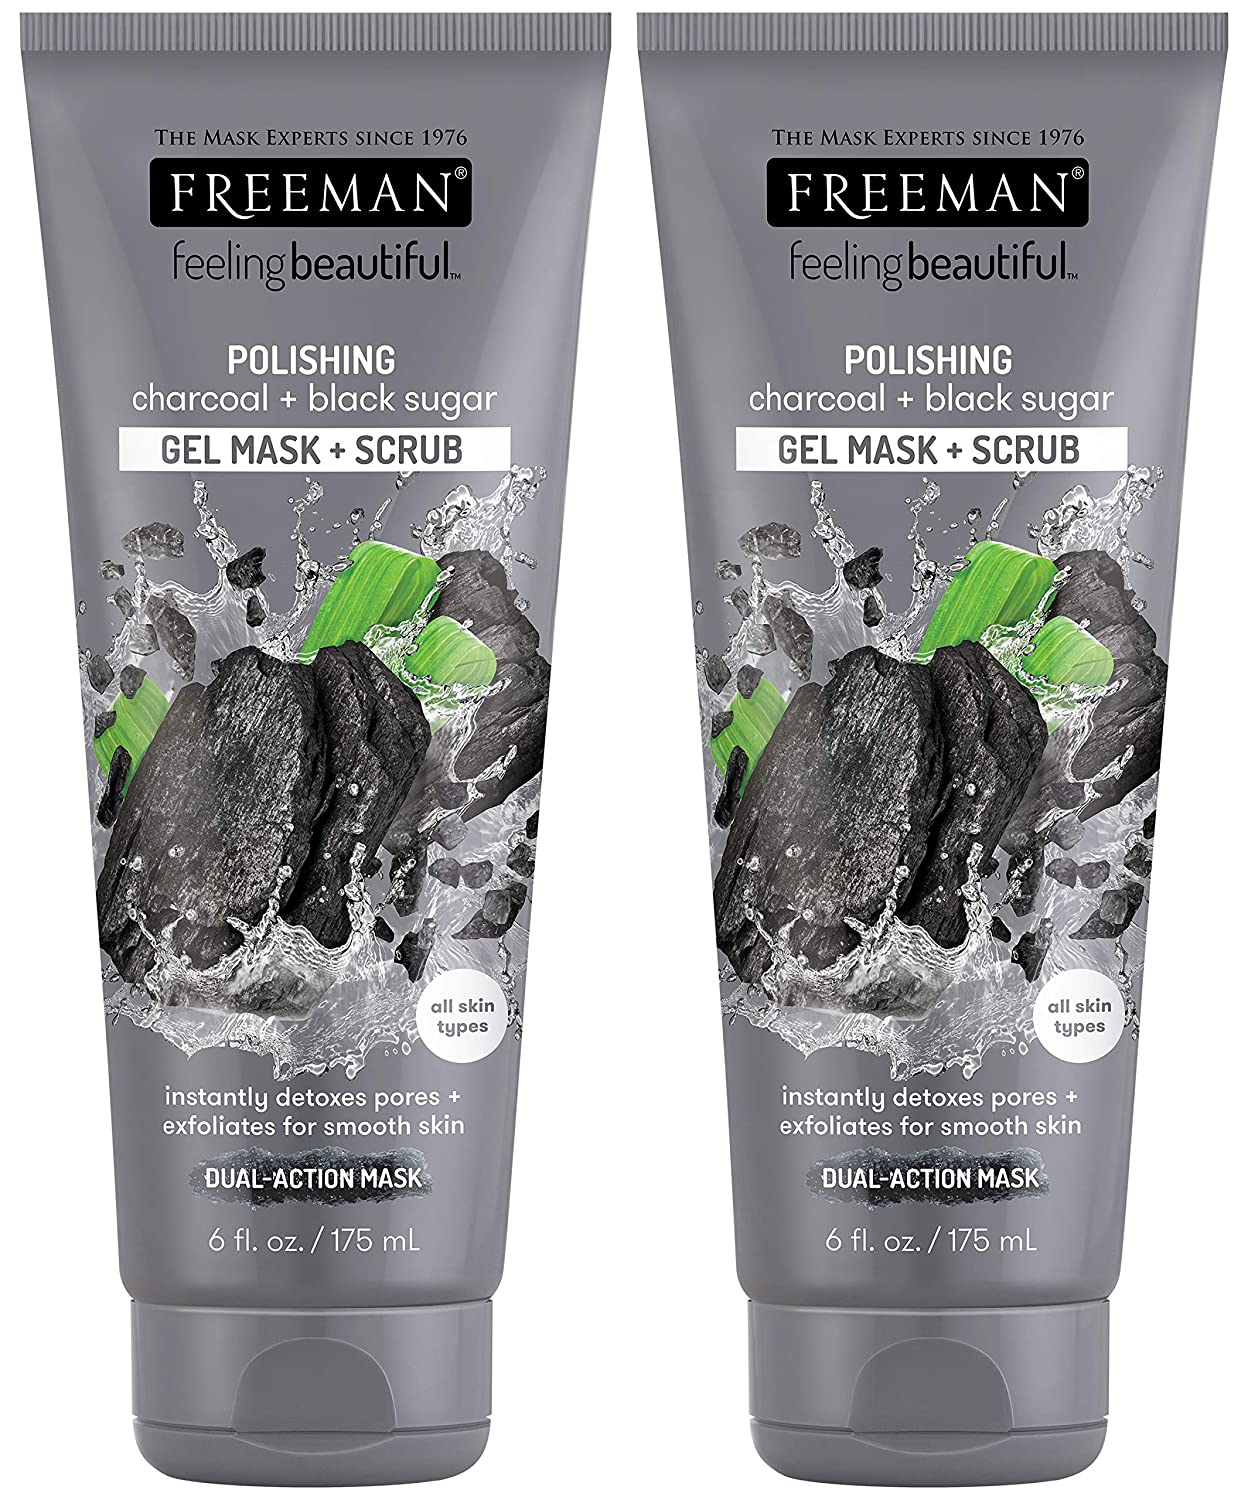 Freeman Feeling Beautiful Charcoal & Black Sugar Gel Mask and Scrub, 6-Ounce (Pack of 2)